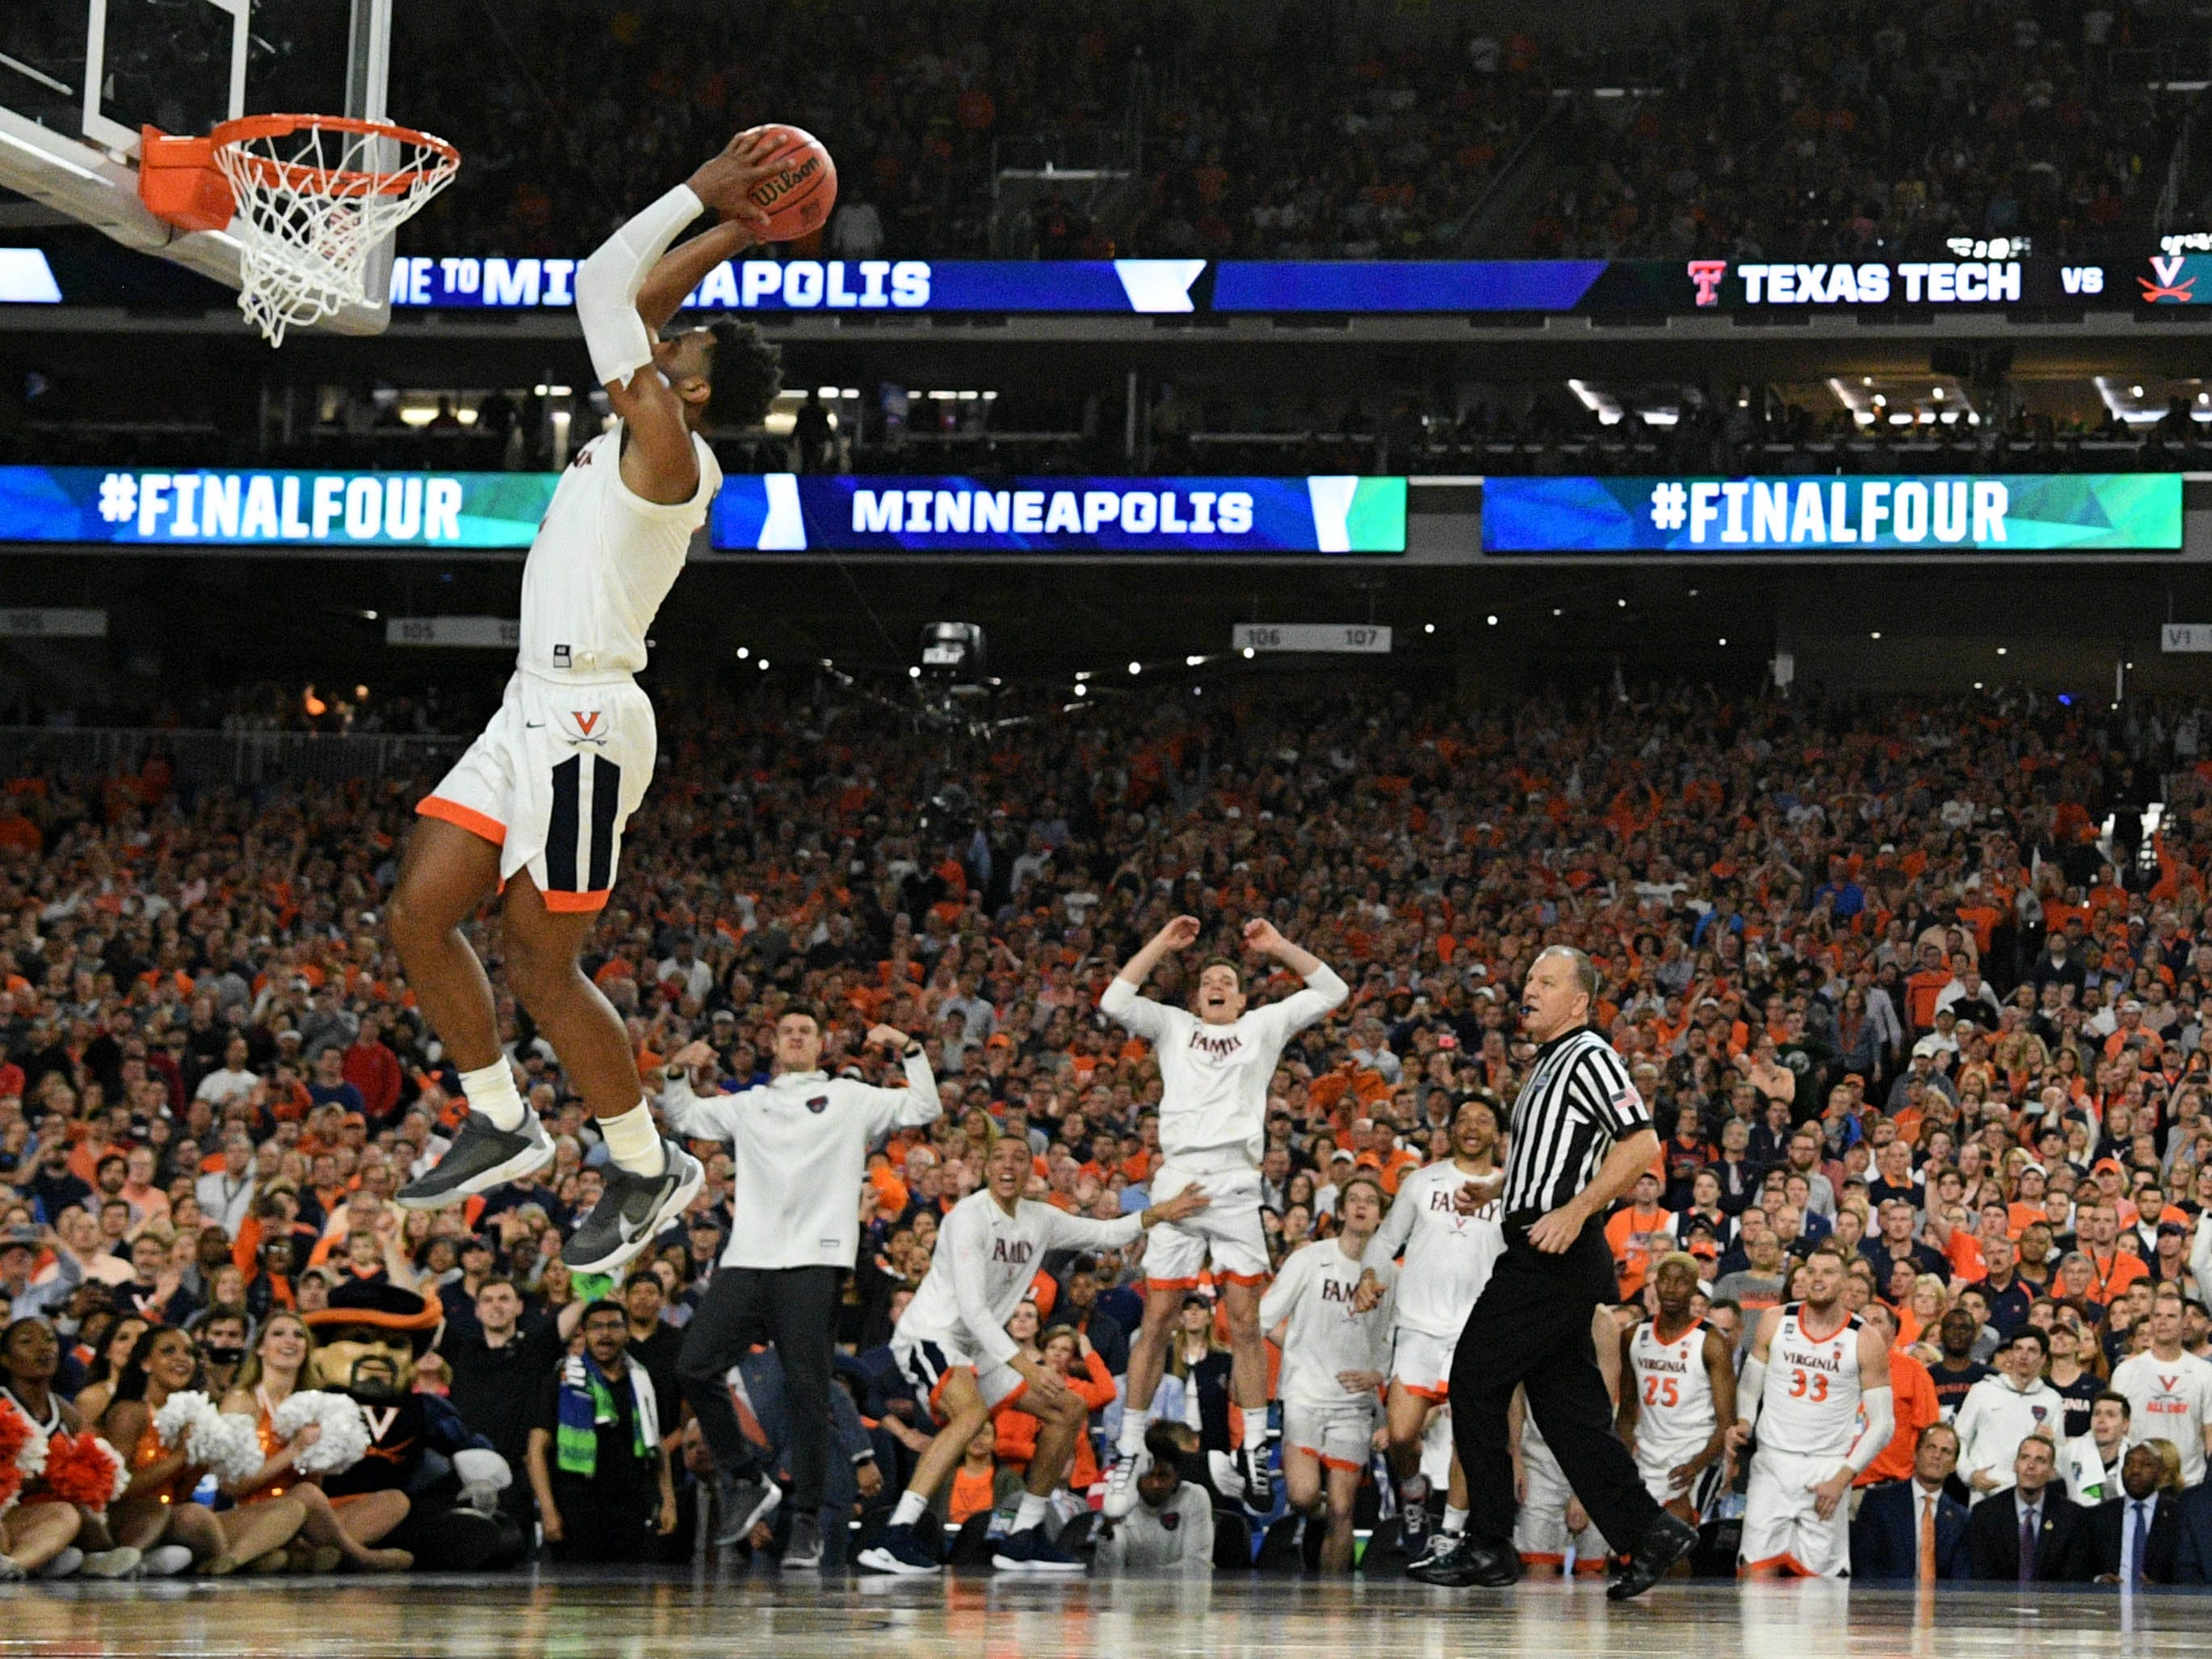 Virginia's Braxton Key dunks the ball against Texas Tech in overtime in the championship game.